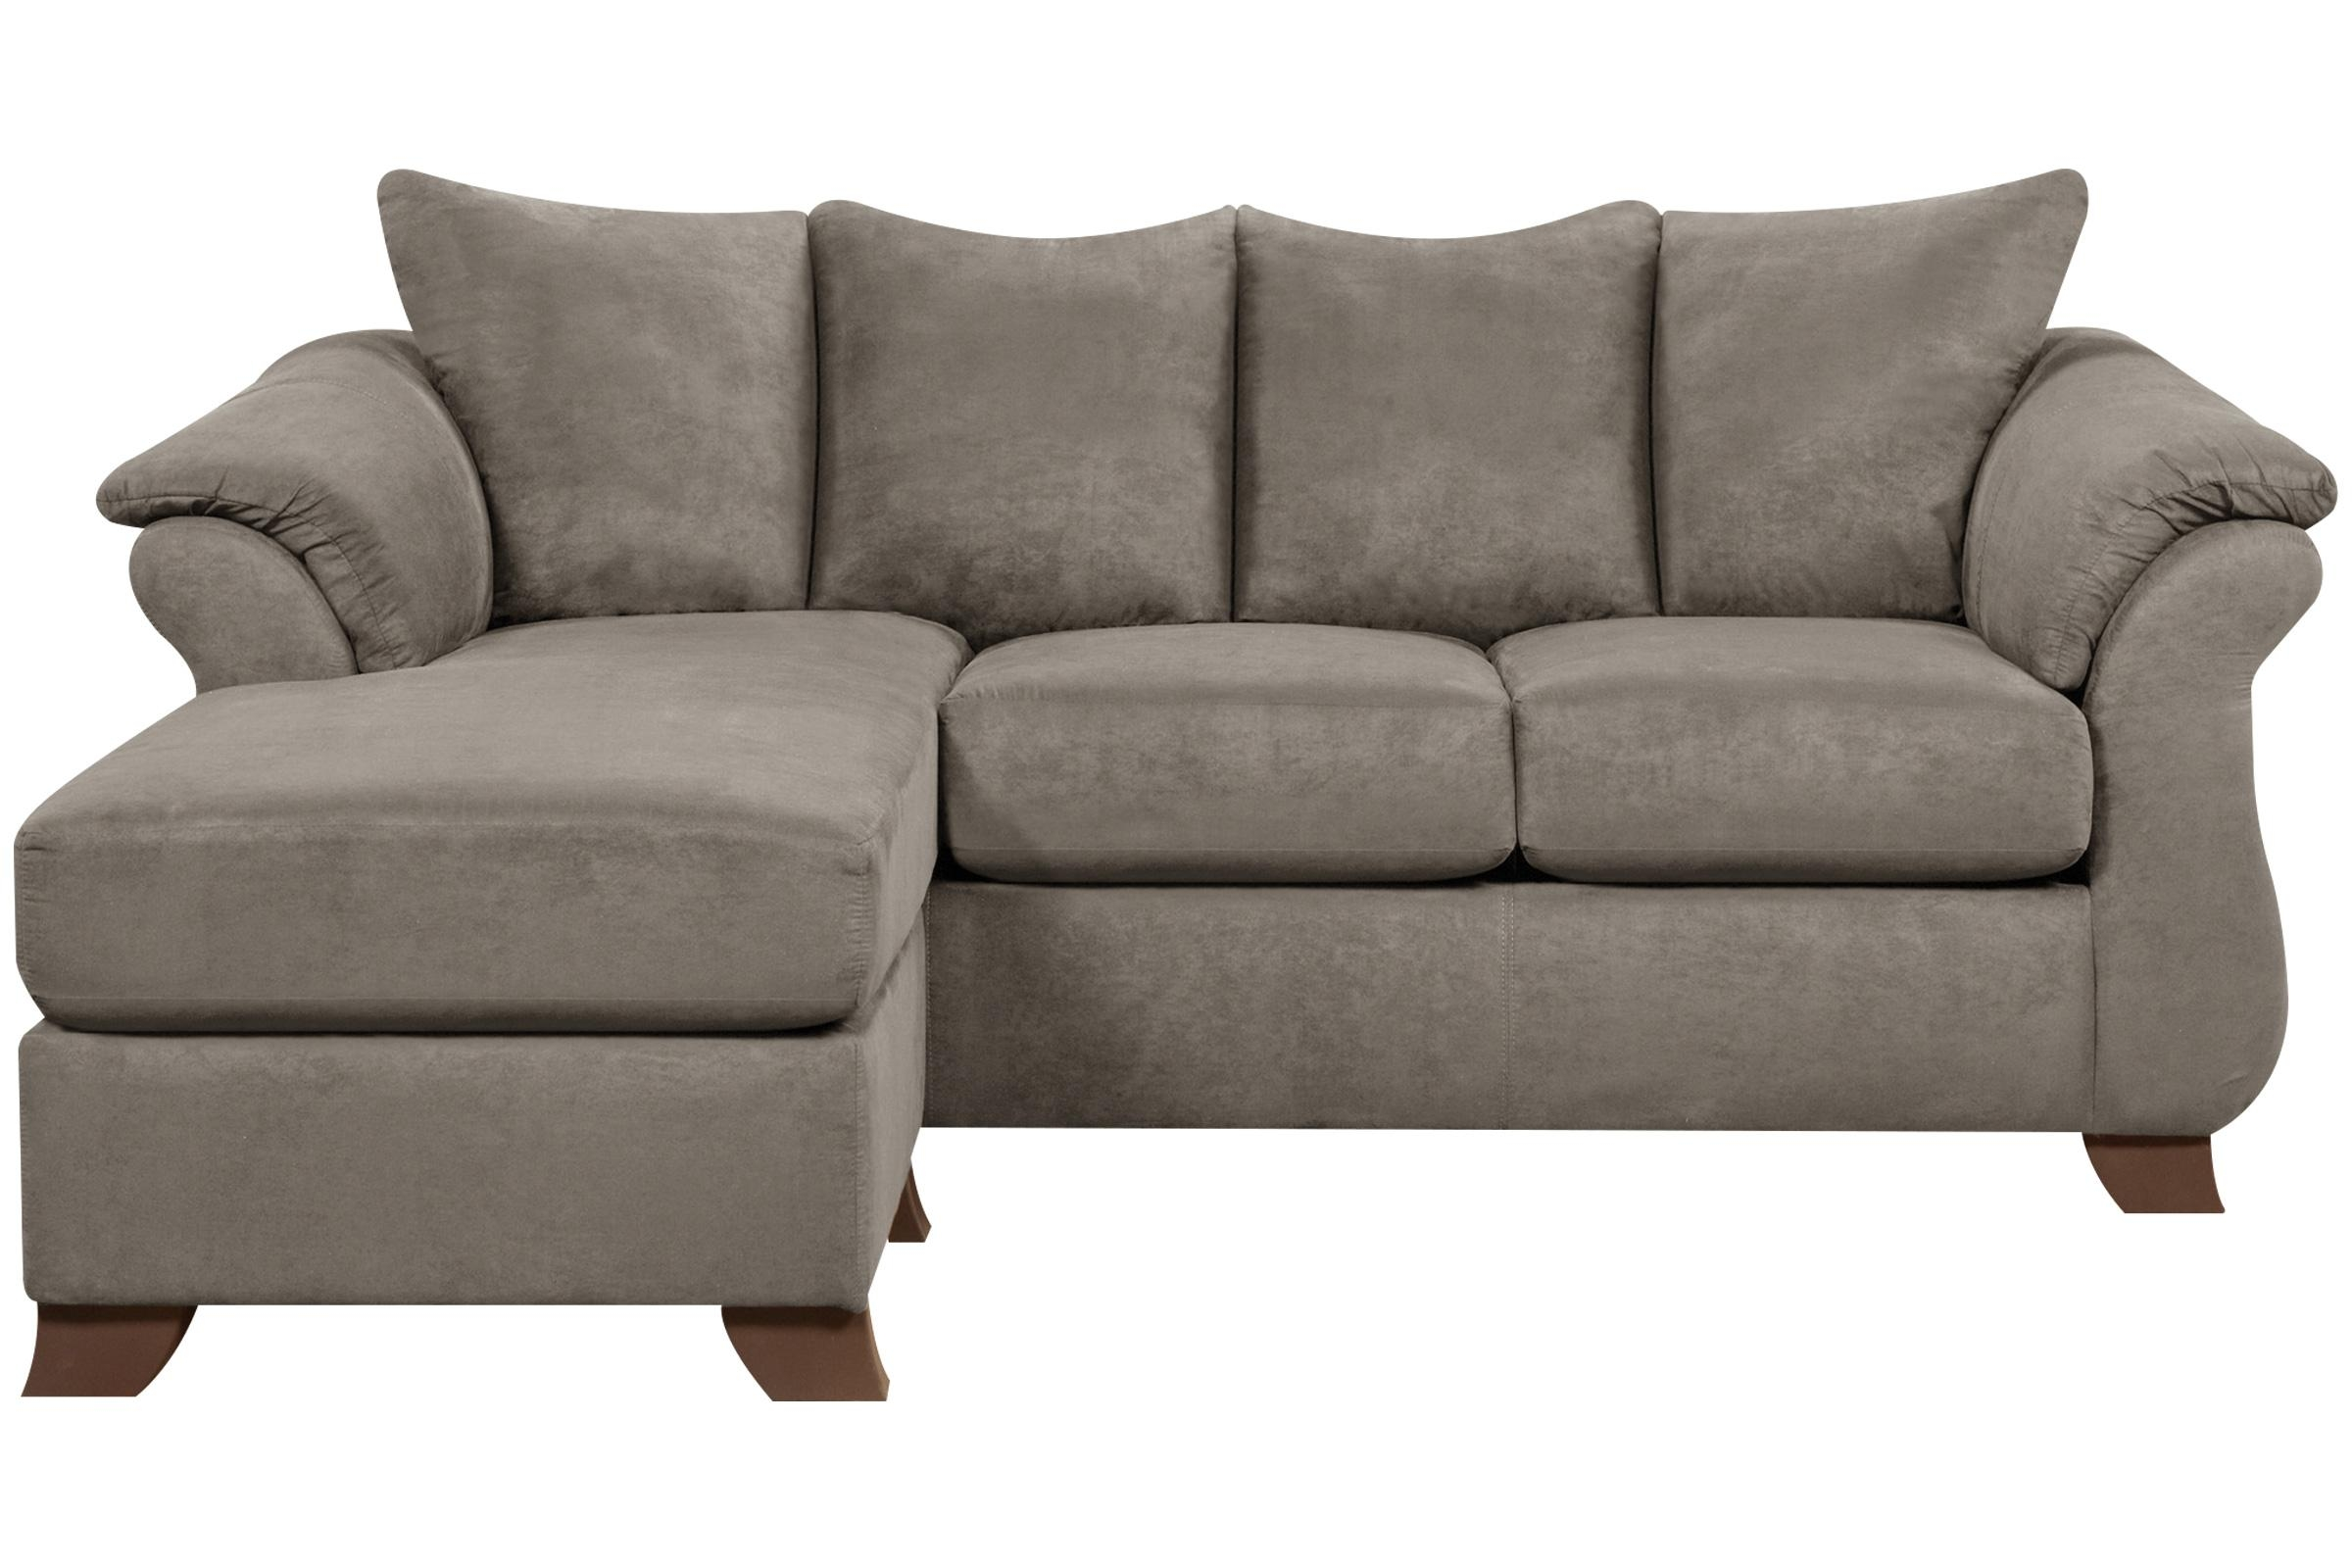 Upton Microfiber Sofa With Floating Ottoman In Floating Sofas (Image 20 of 20)